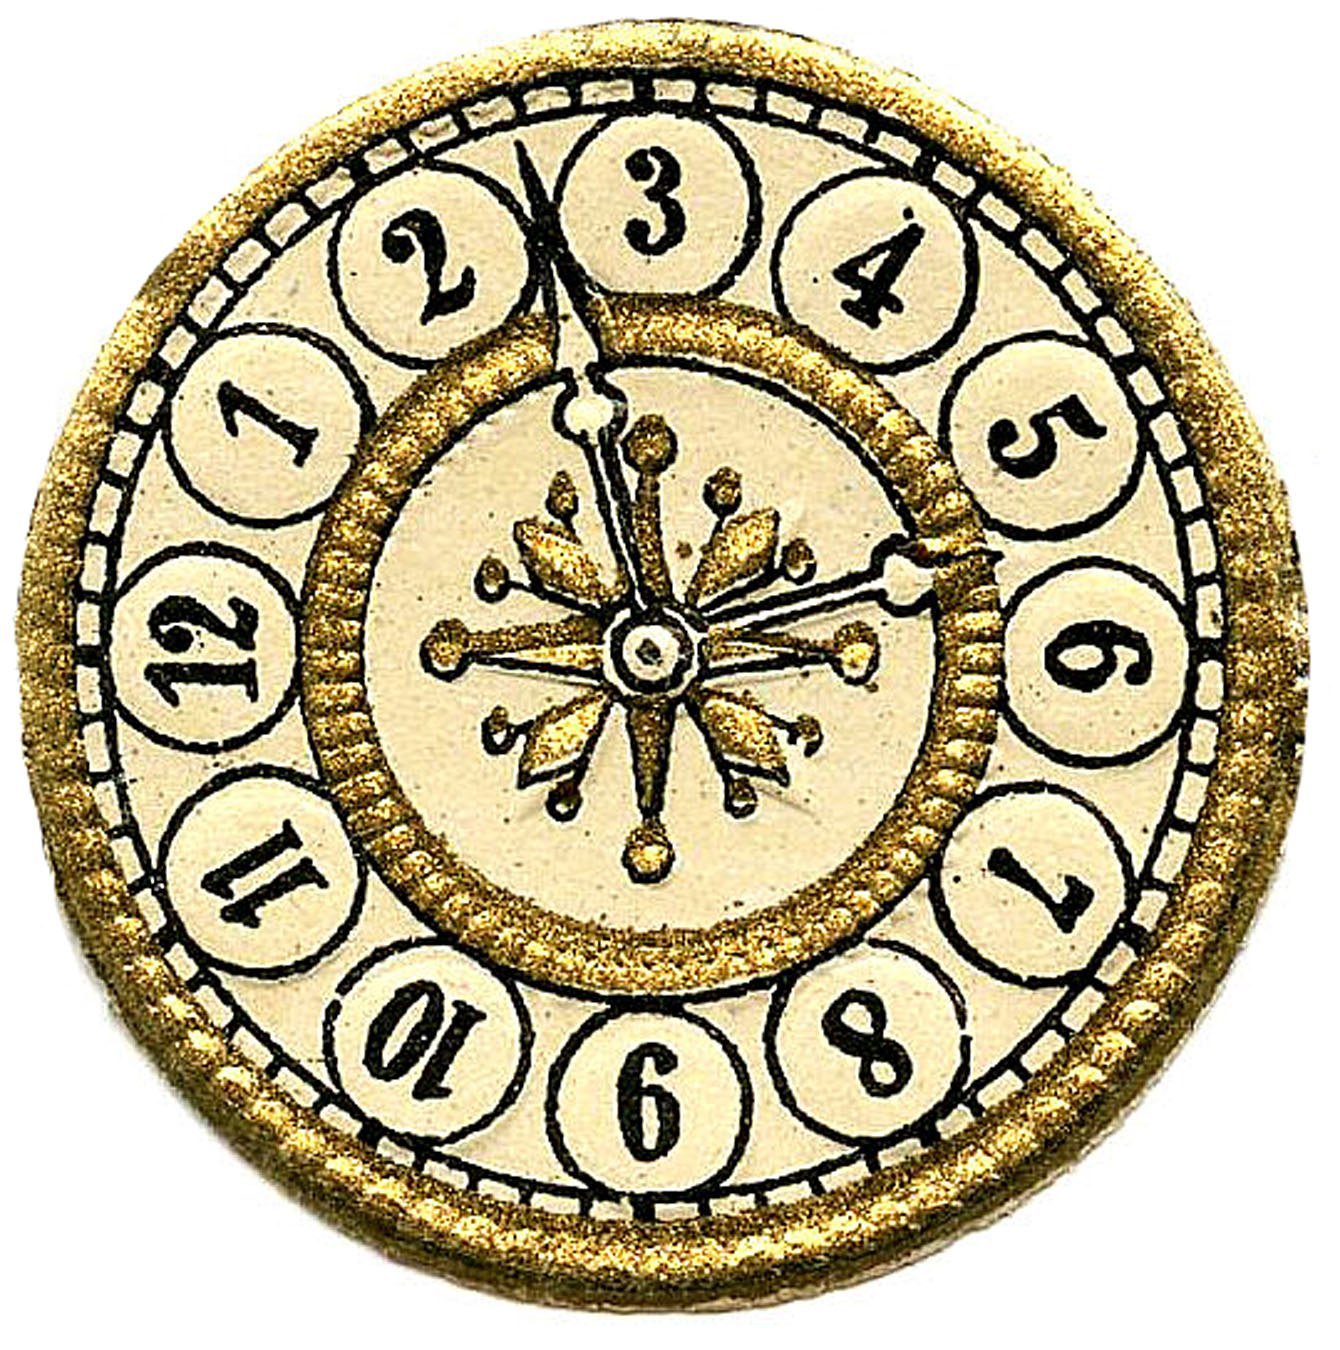 Vintage Clip Art   Scrap Clock Faces   Steampunk   The Graphics Fairy